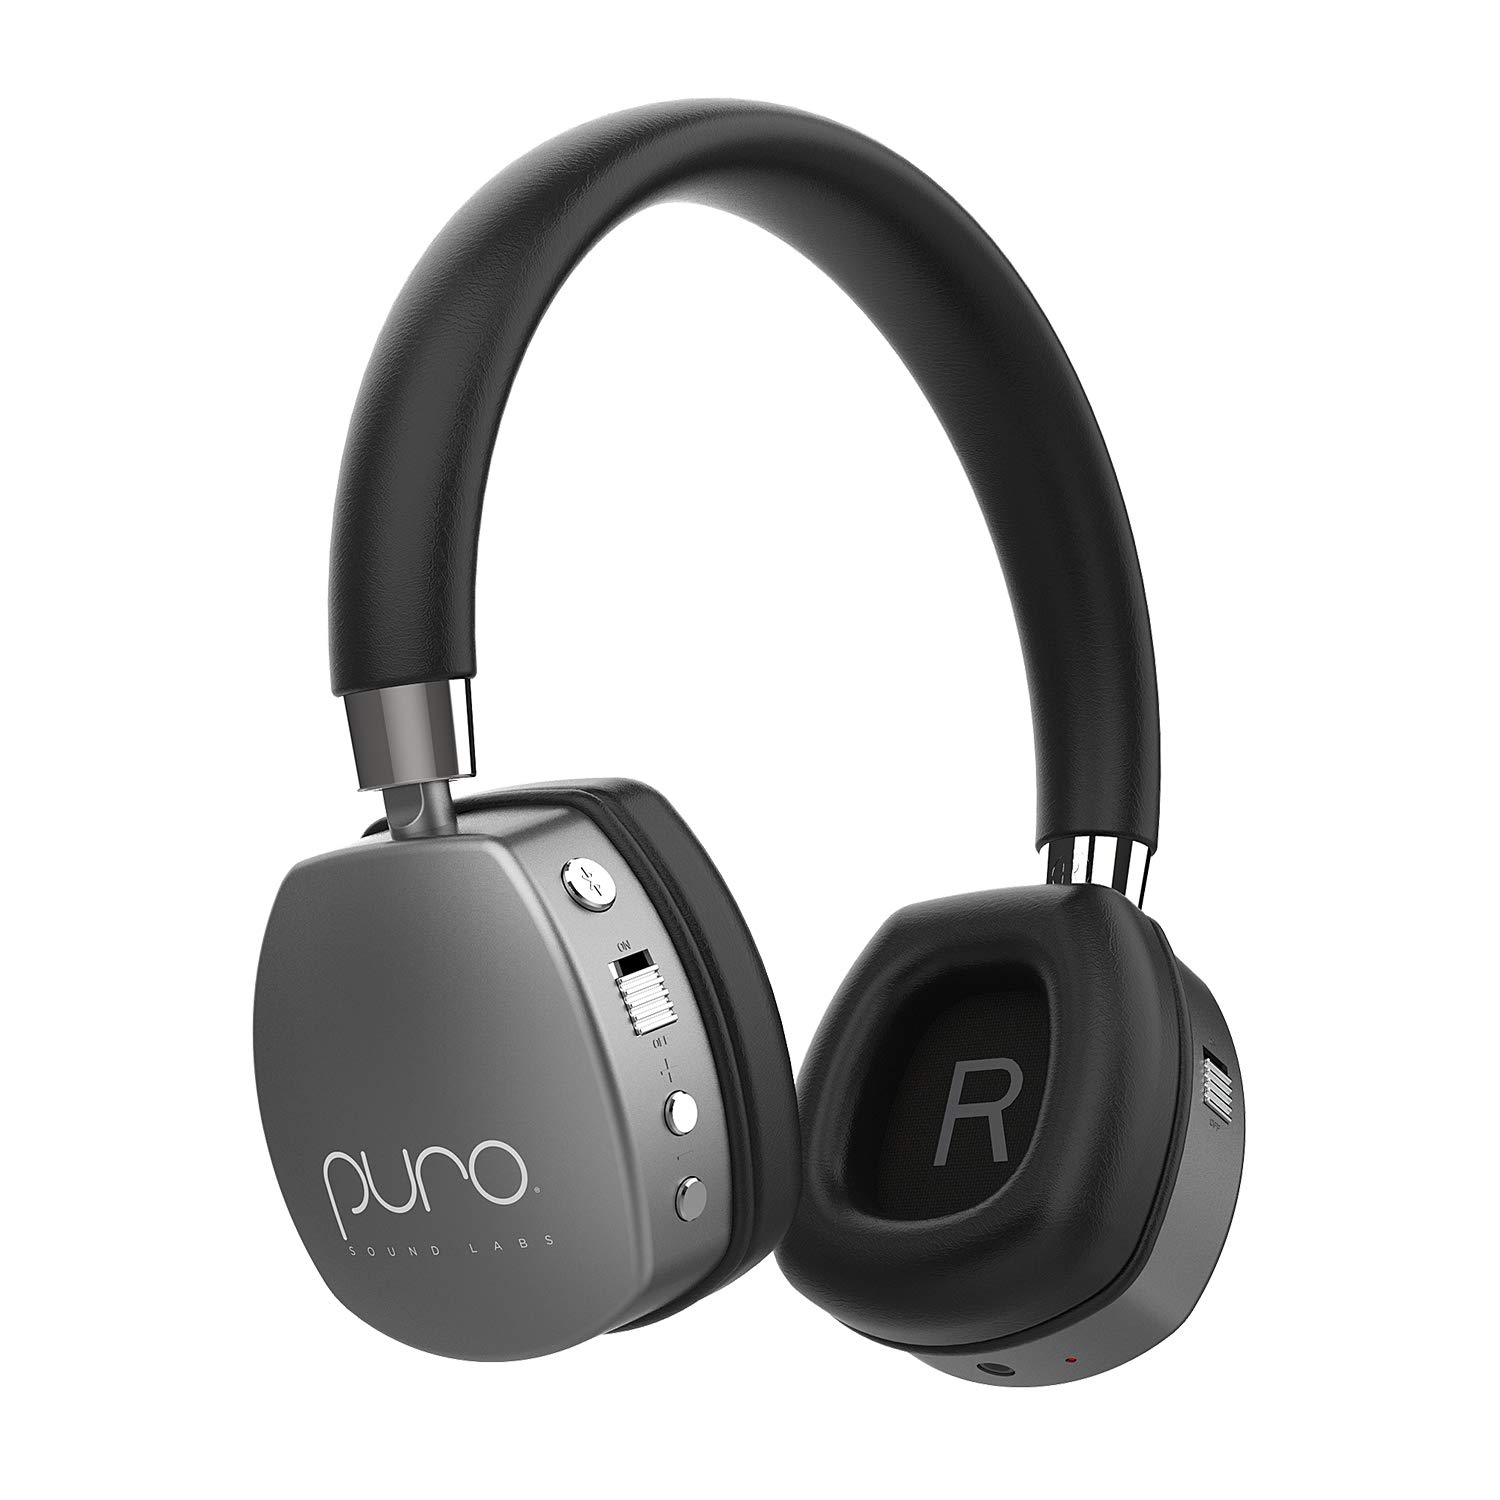 Puro Sound Labs PuroQuiet Kids Volume-Limiting Noise-Cancelling On-Ear Wireless Headphones (Gray) by Puro Sound Labs